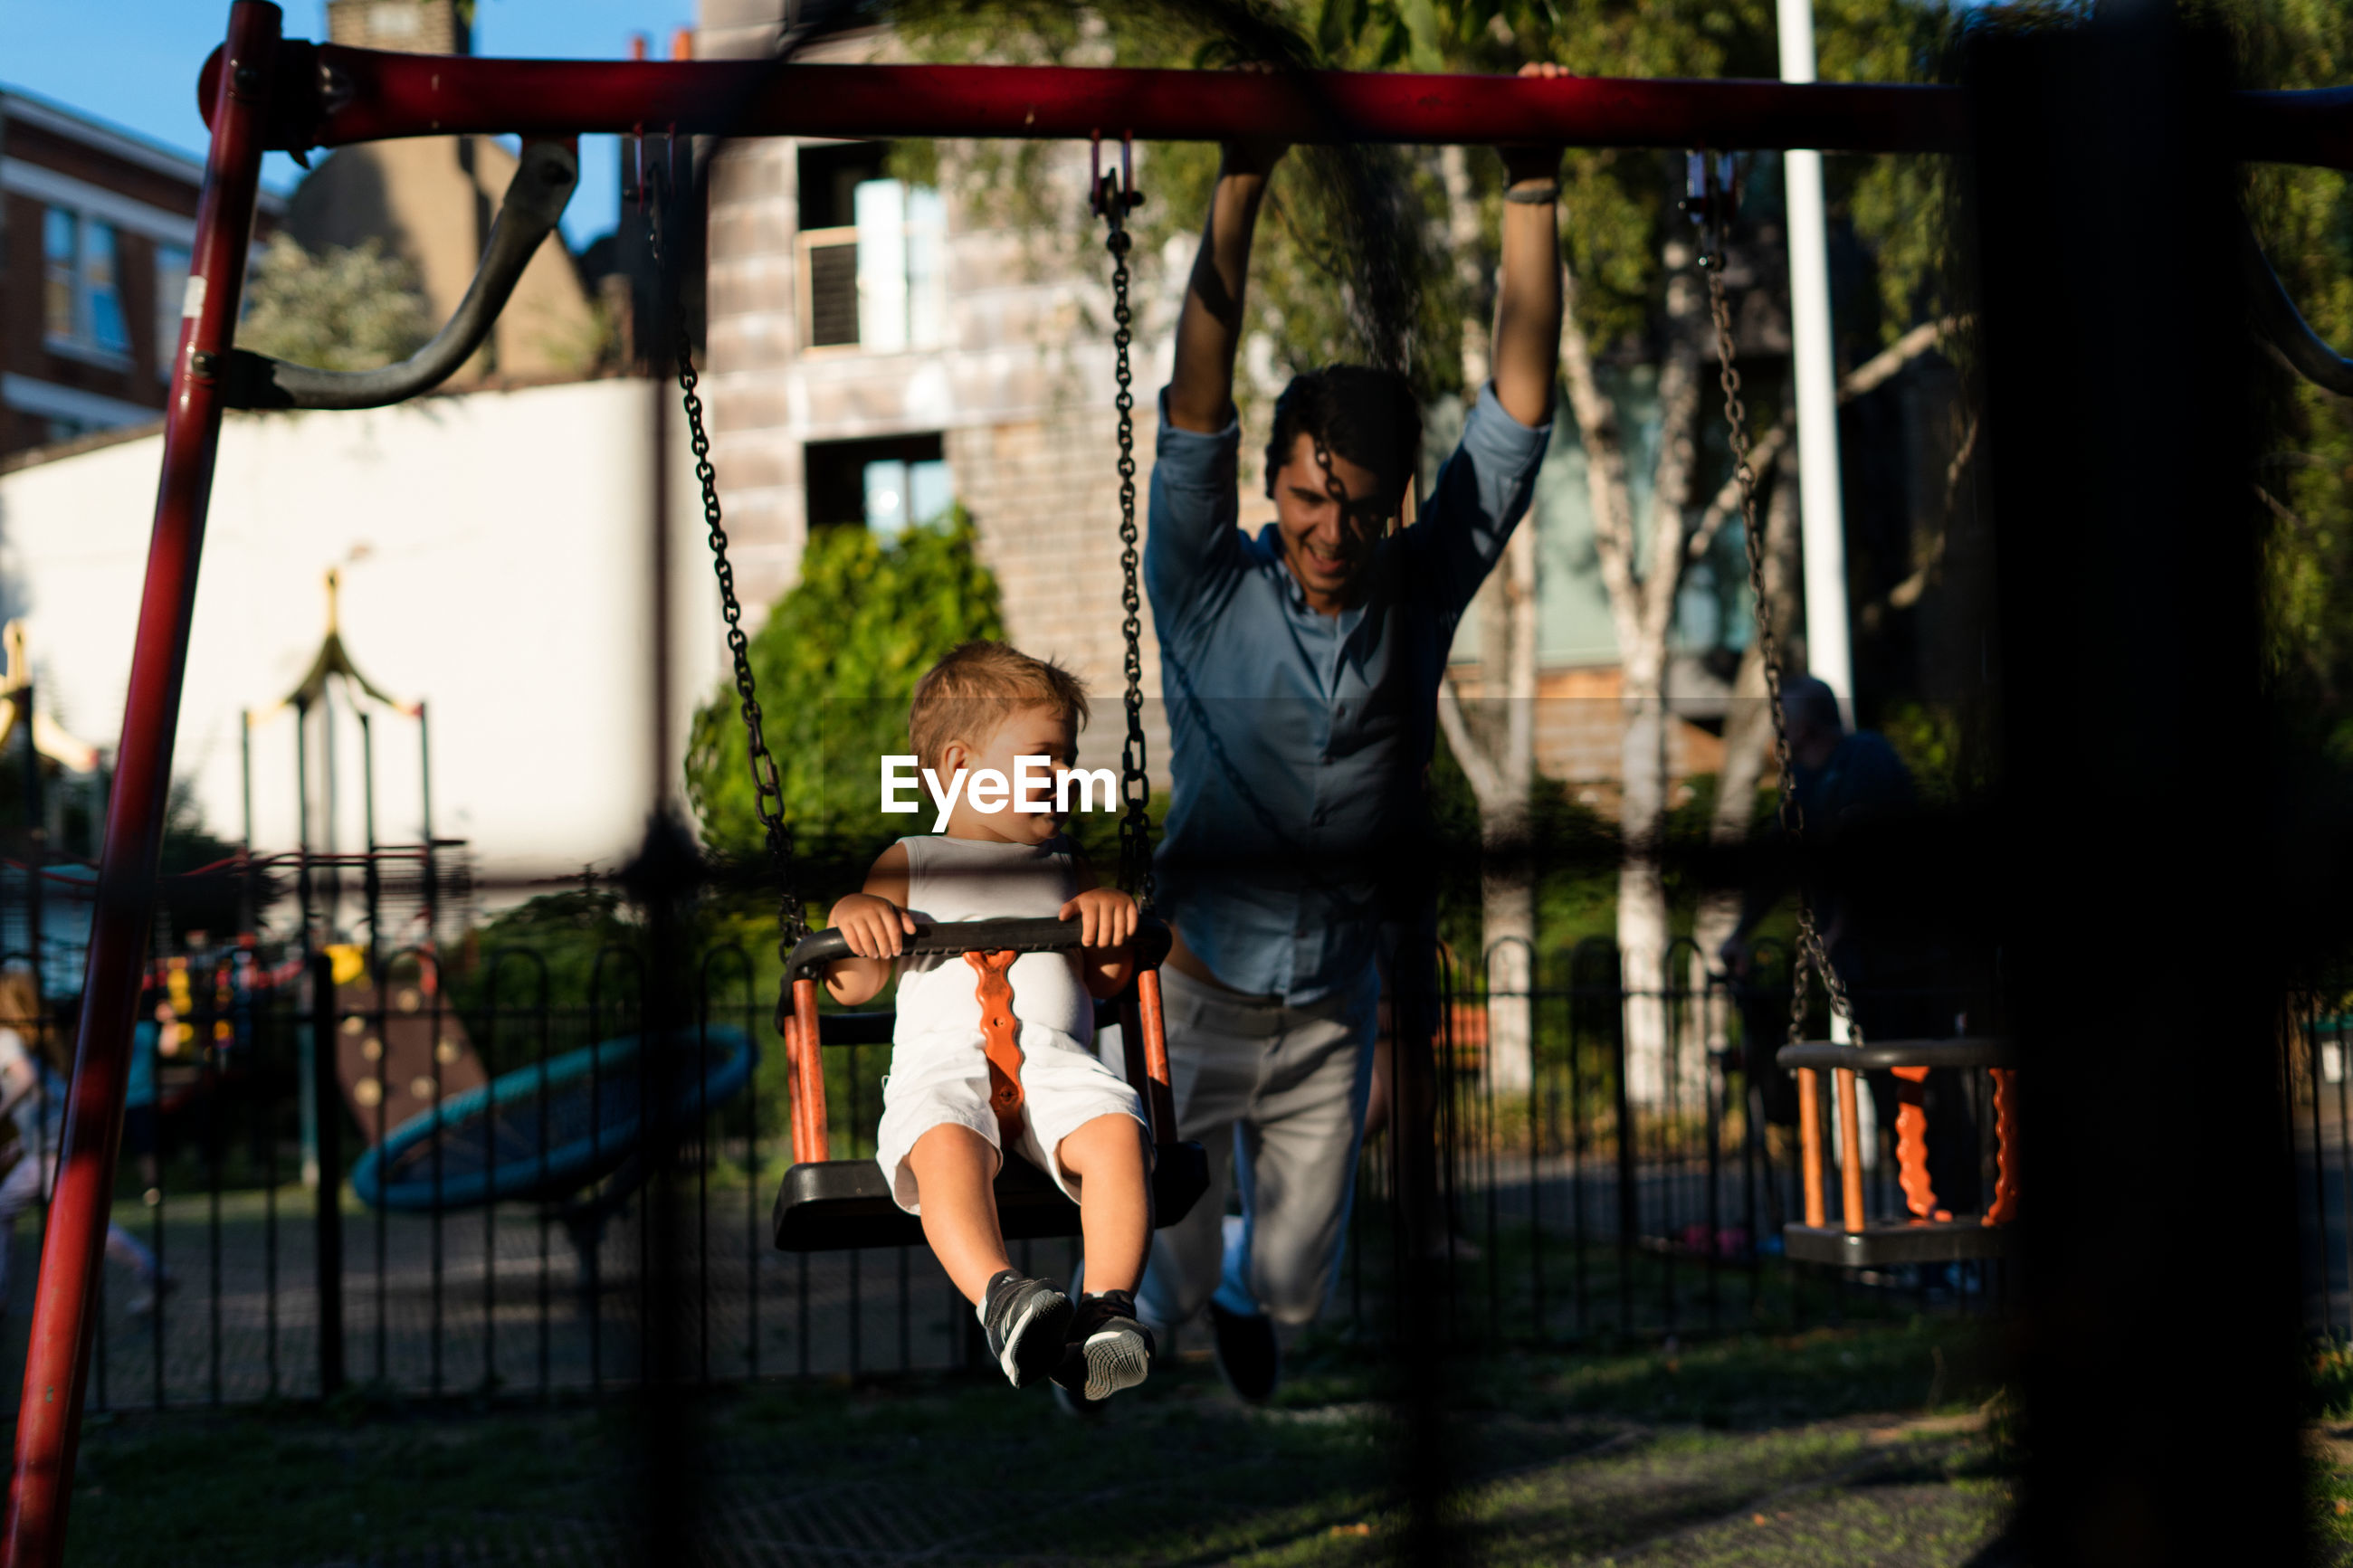 Girl with man swinging in playground